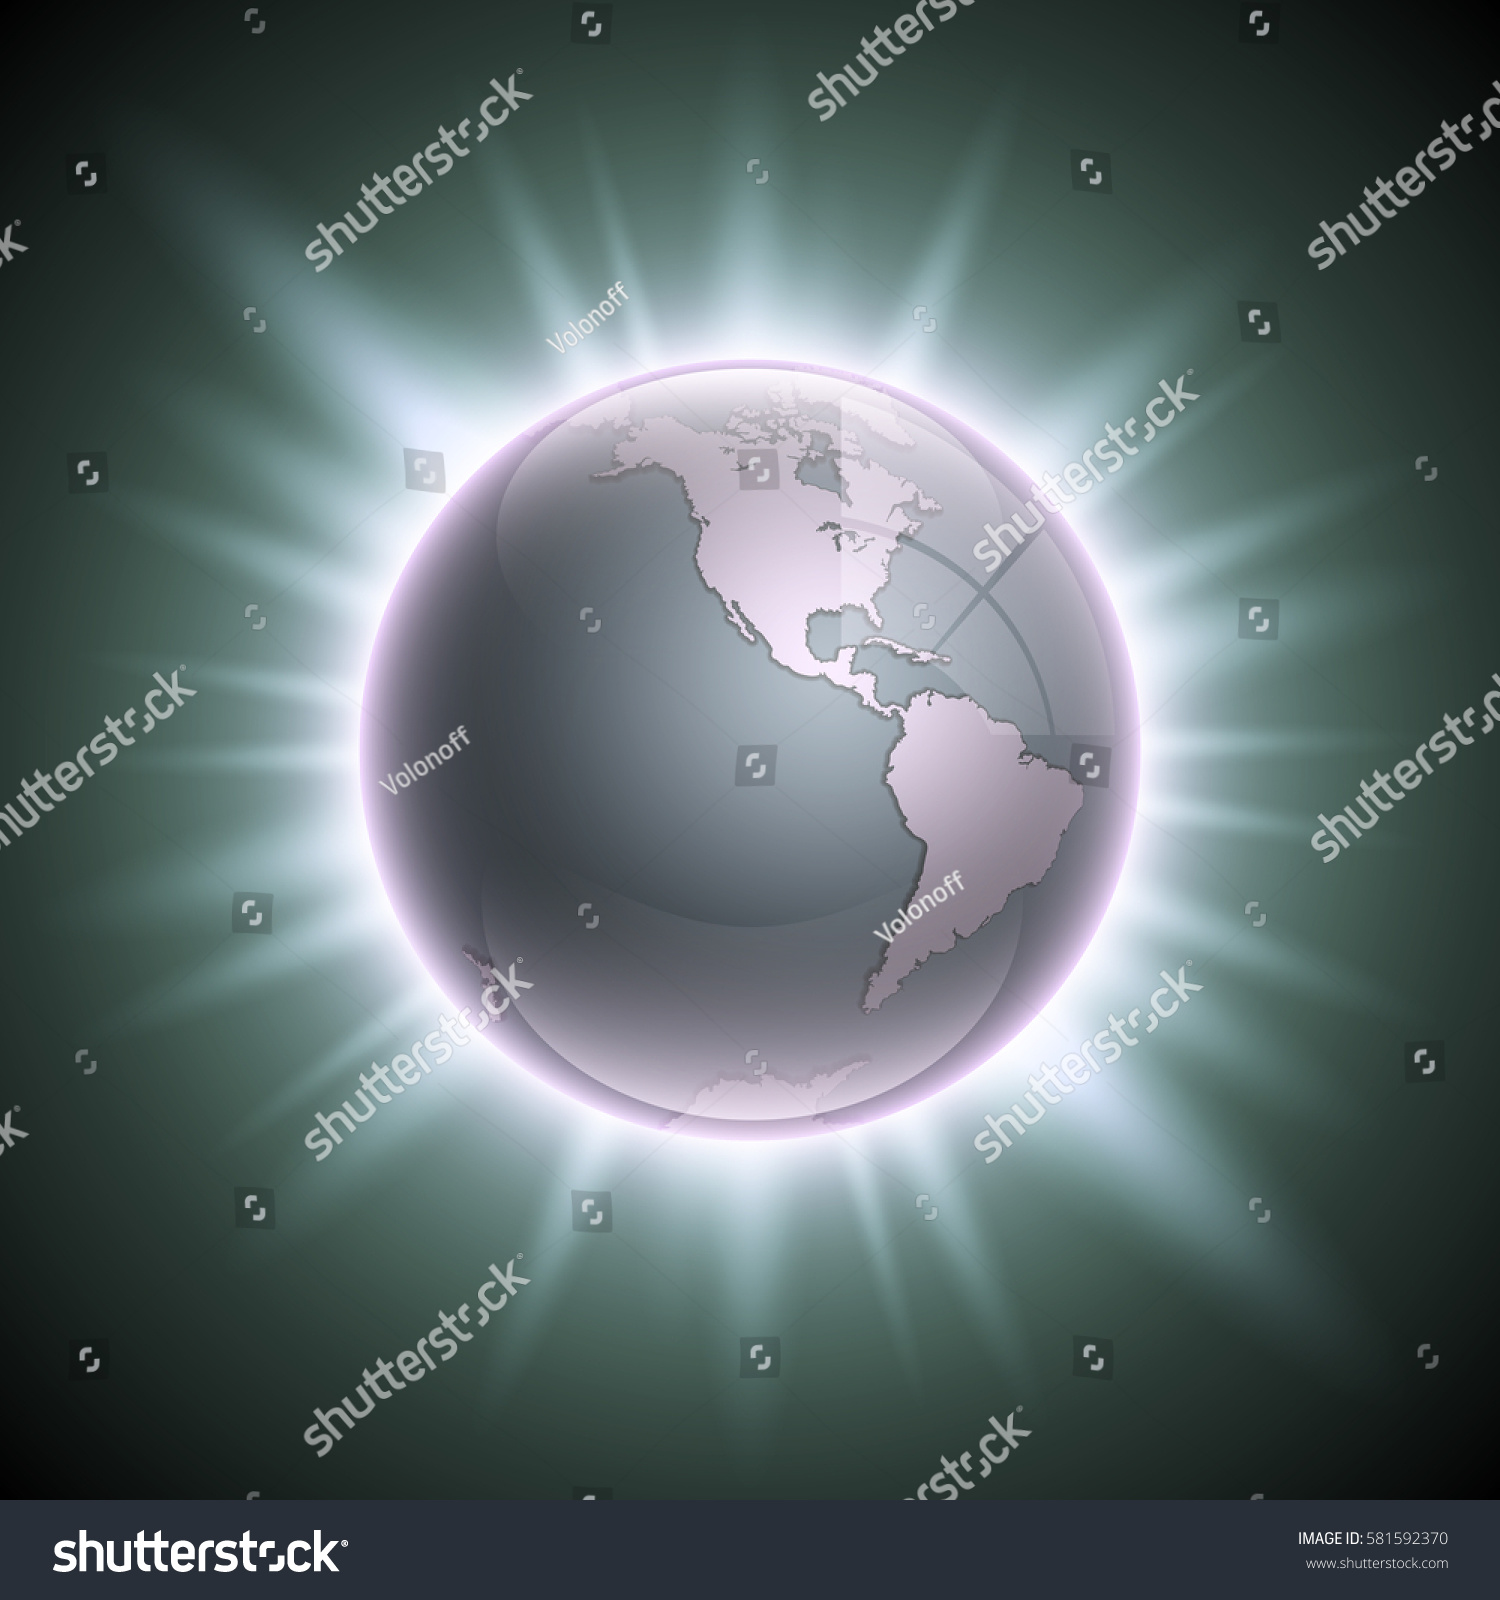 Vector world map rising sun globe stock vector 581592370 vector world map with the rising sun globe icon in the space sunlight planet gumiabroncs Choice Image